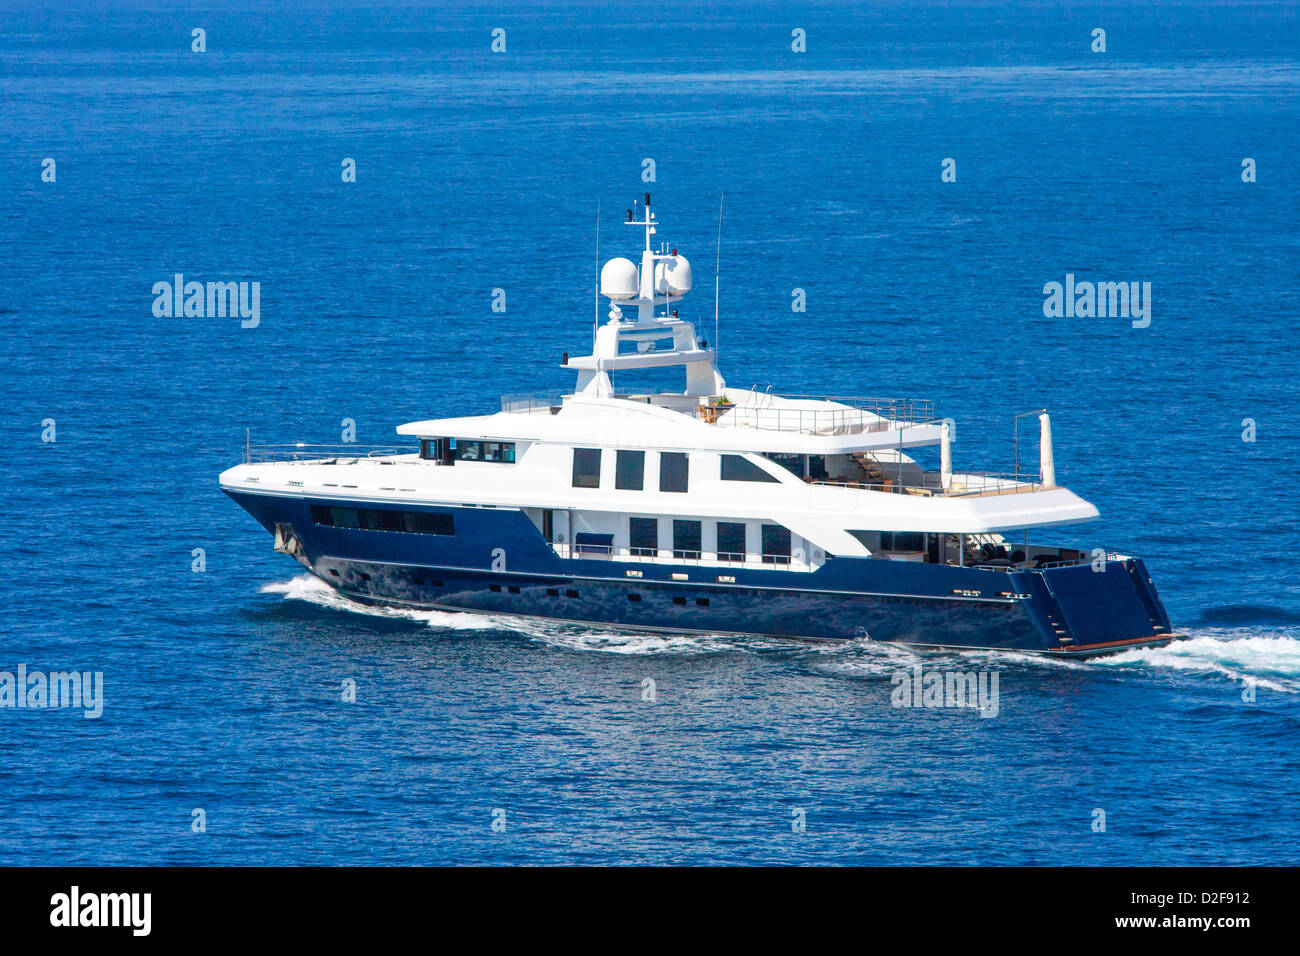 A large private motor yacht under way out at sea - Stock Image